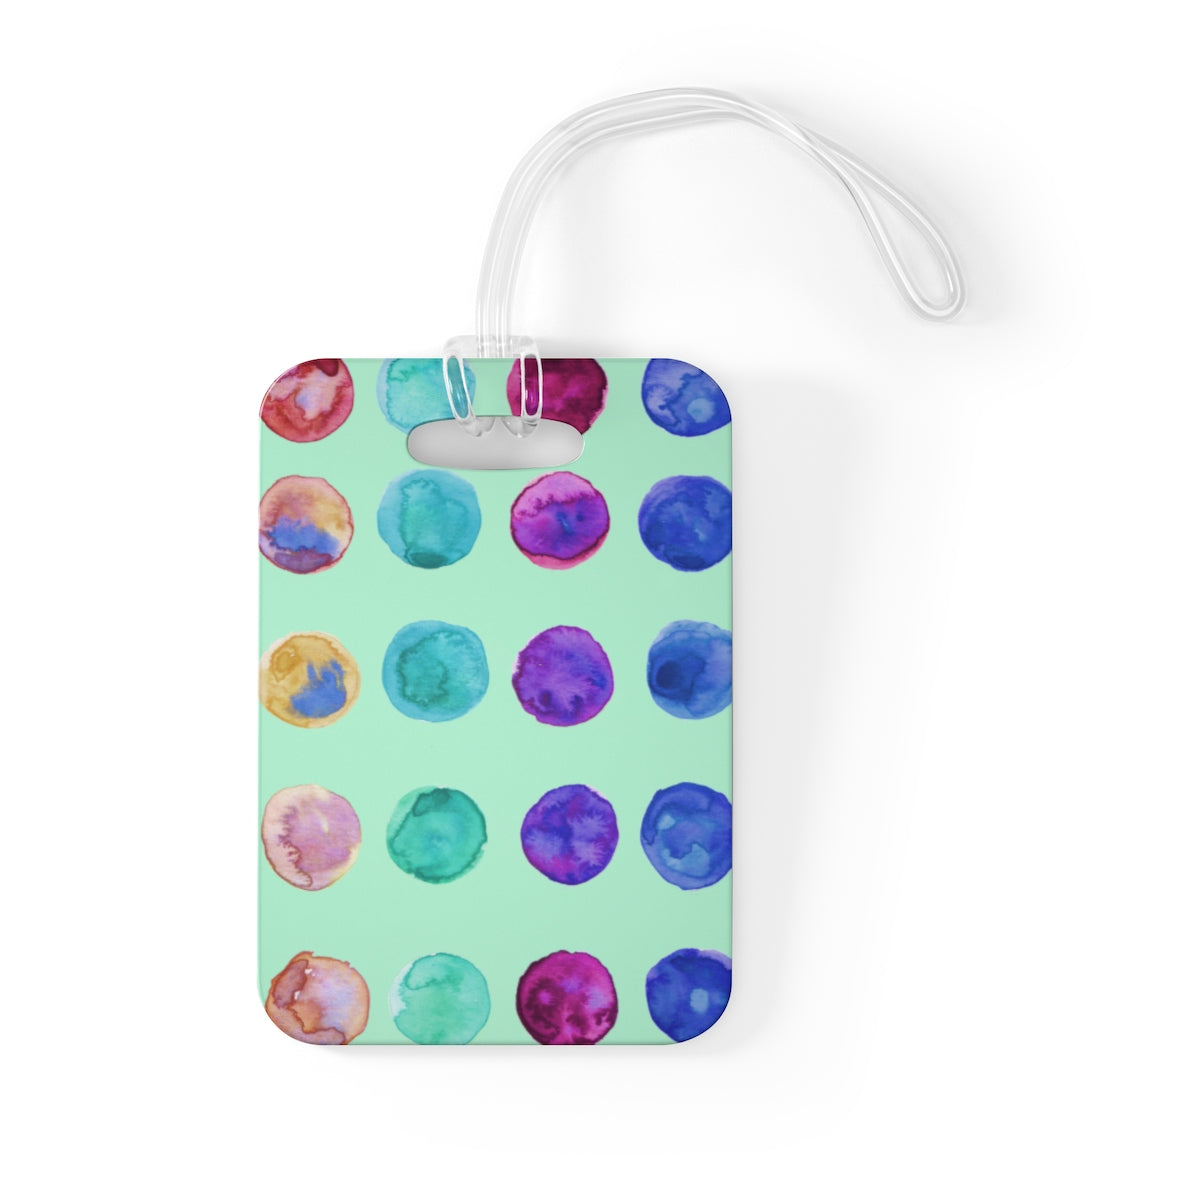 Cute Watercolor Polka Dots Designer Travel Luggage Suitcase Bag Tag-Made in USA-Bag Tags-One Size-Heidi Kimura Art LLC